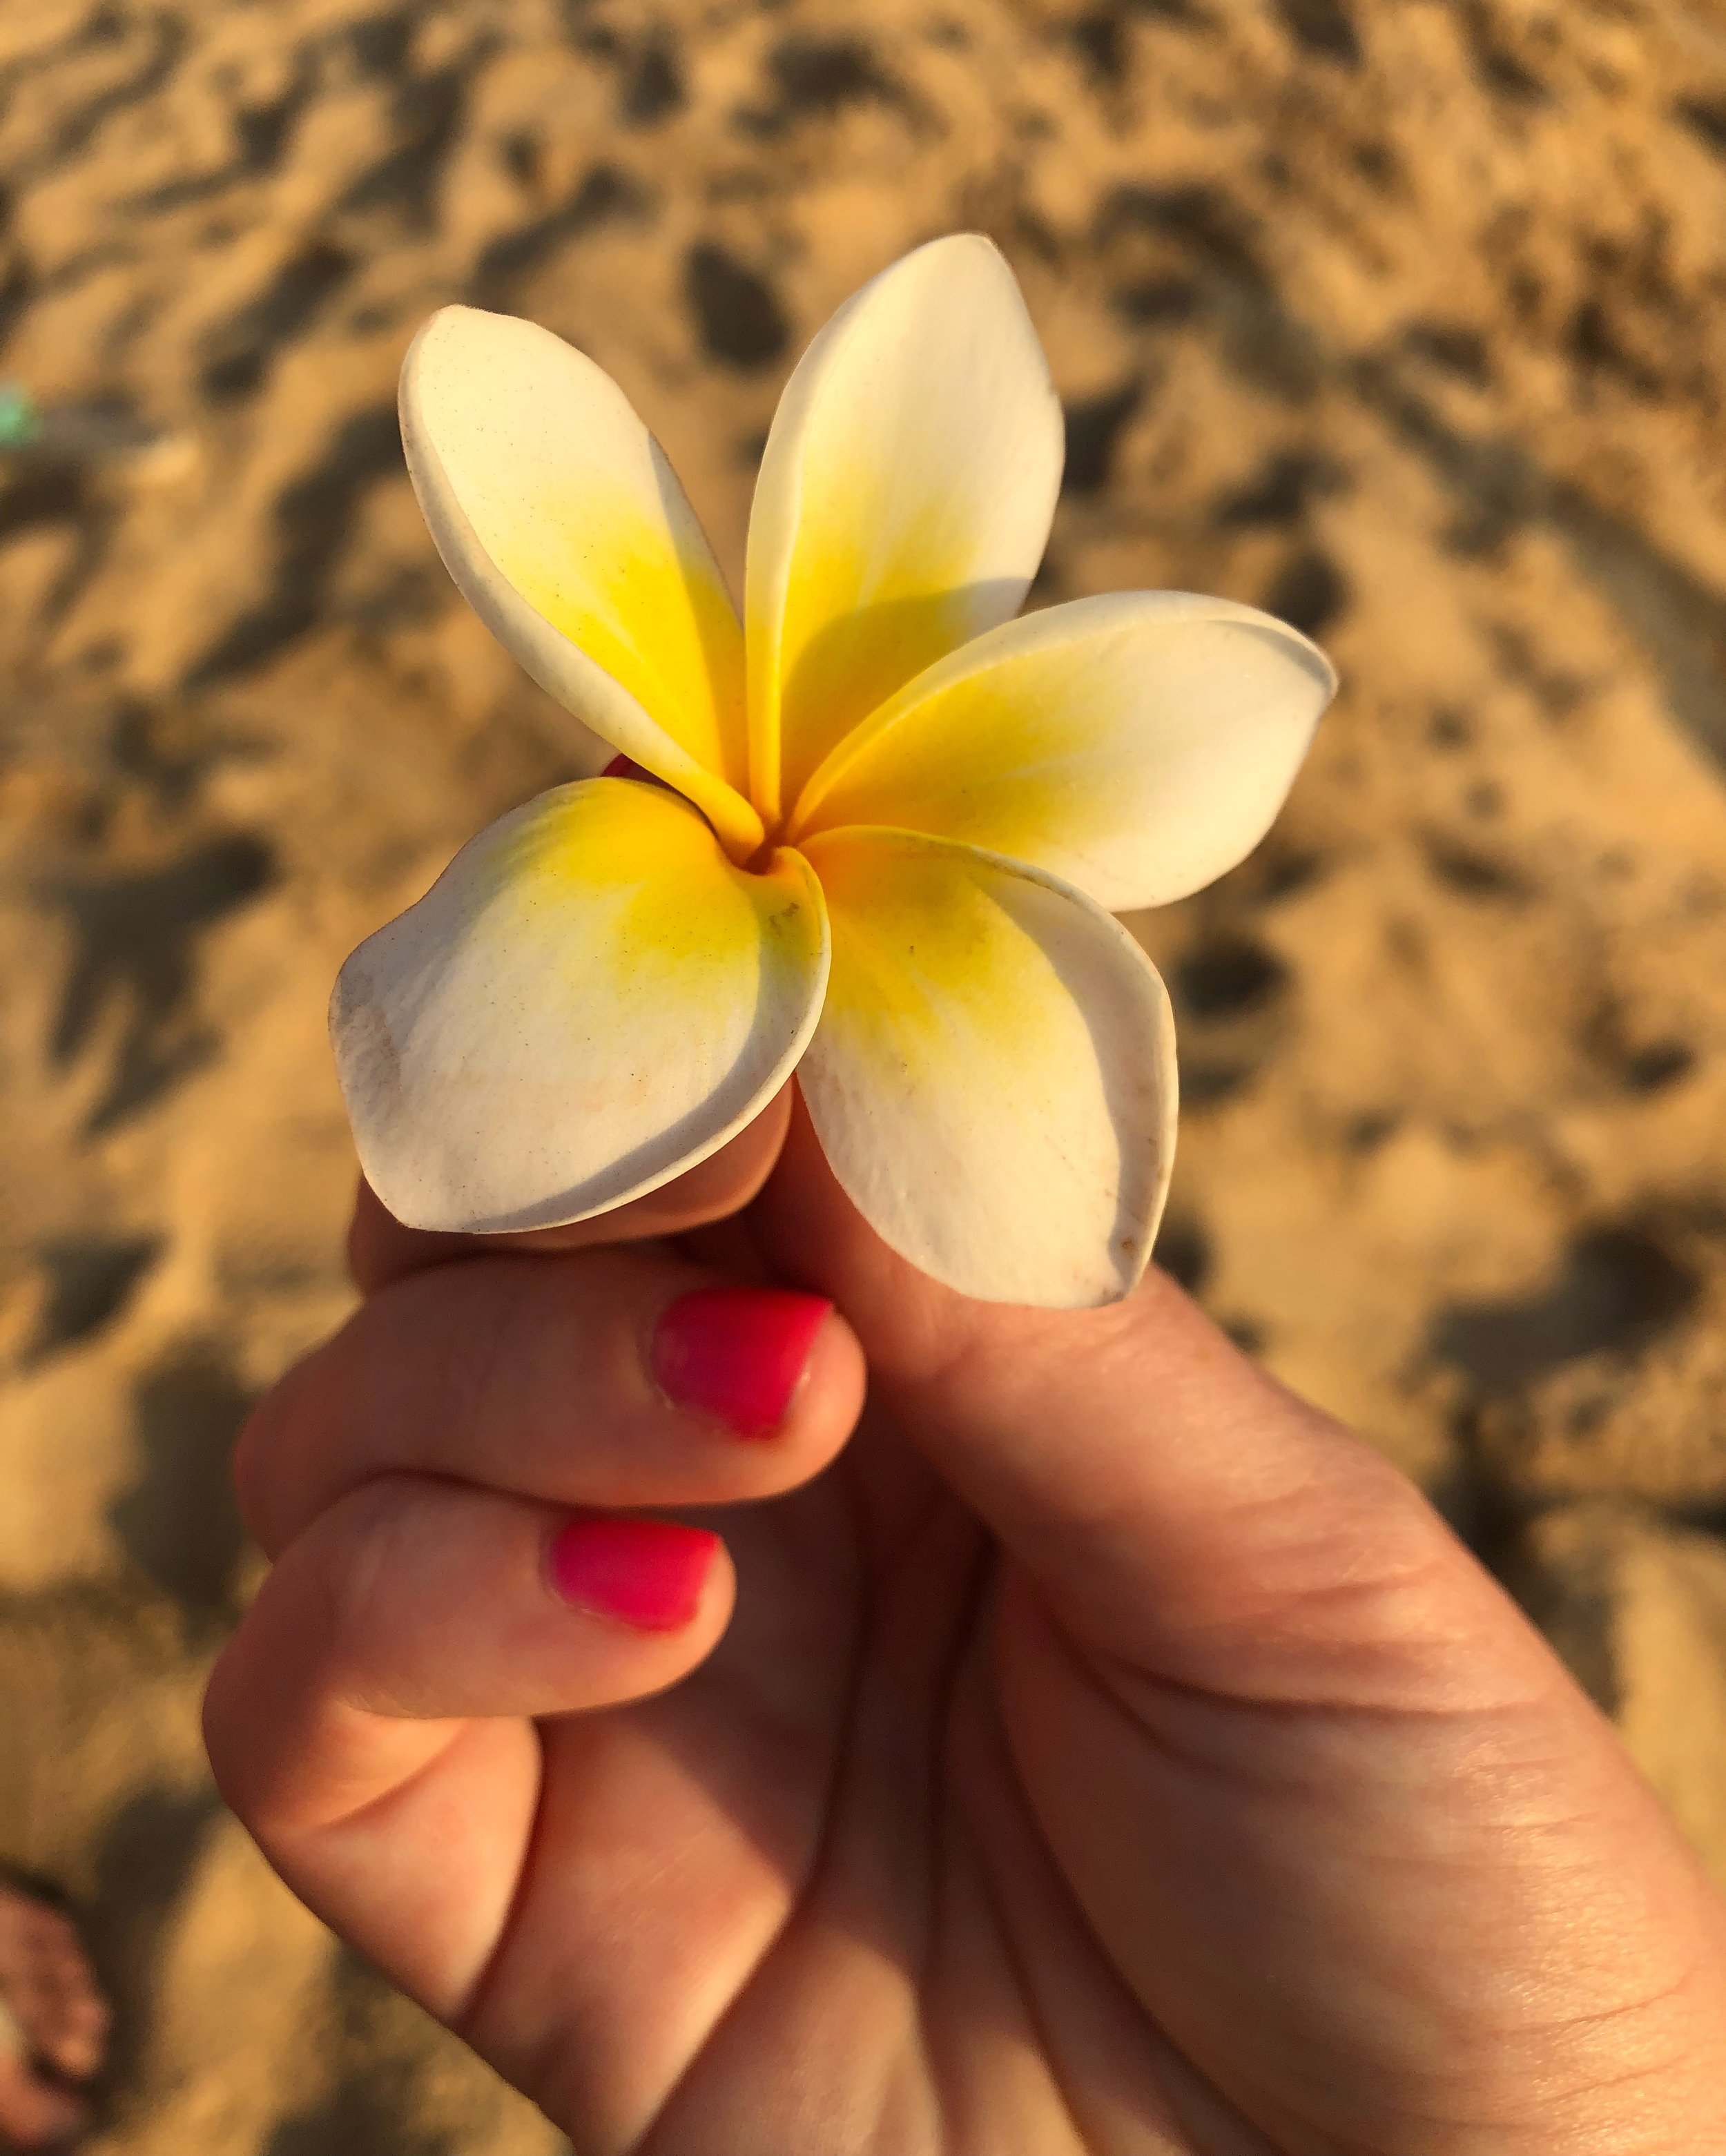 A Plumeria flower, or Champa as they call it in India